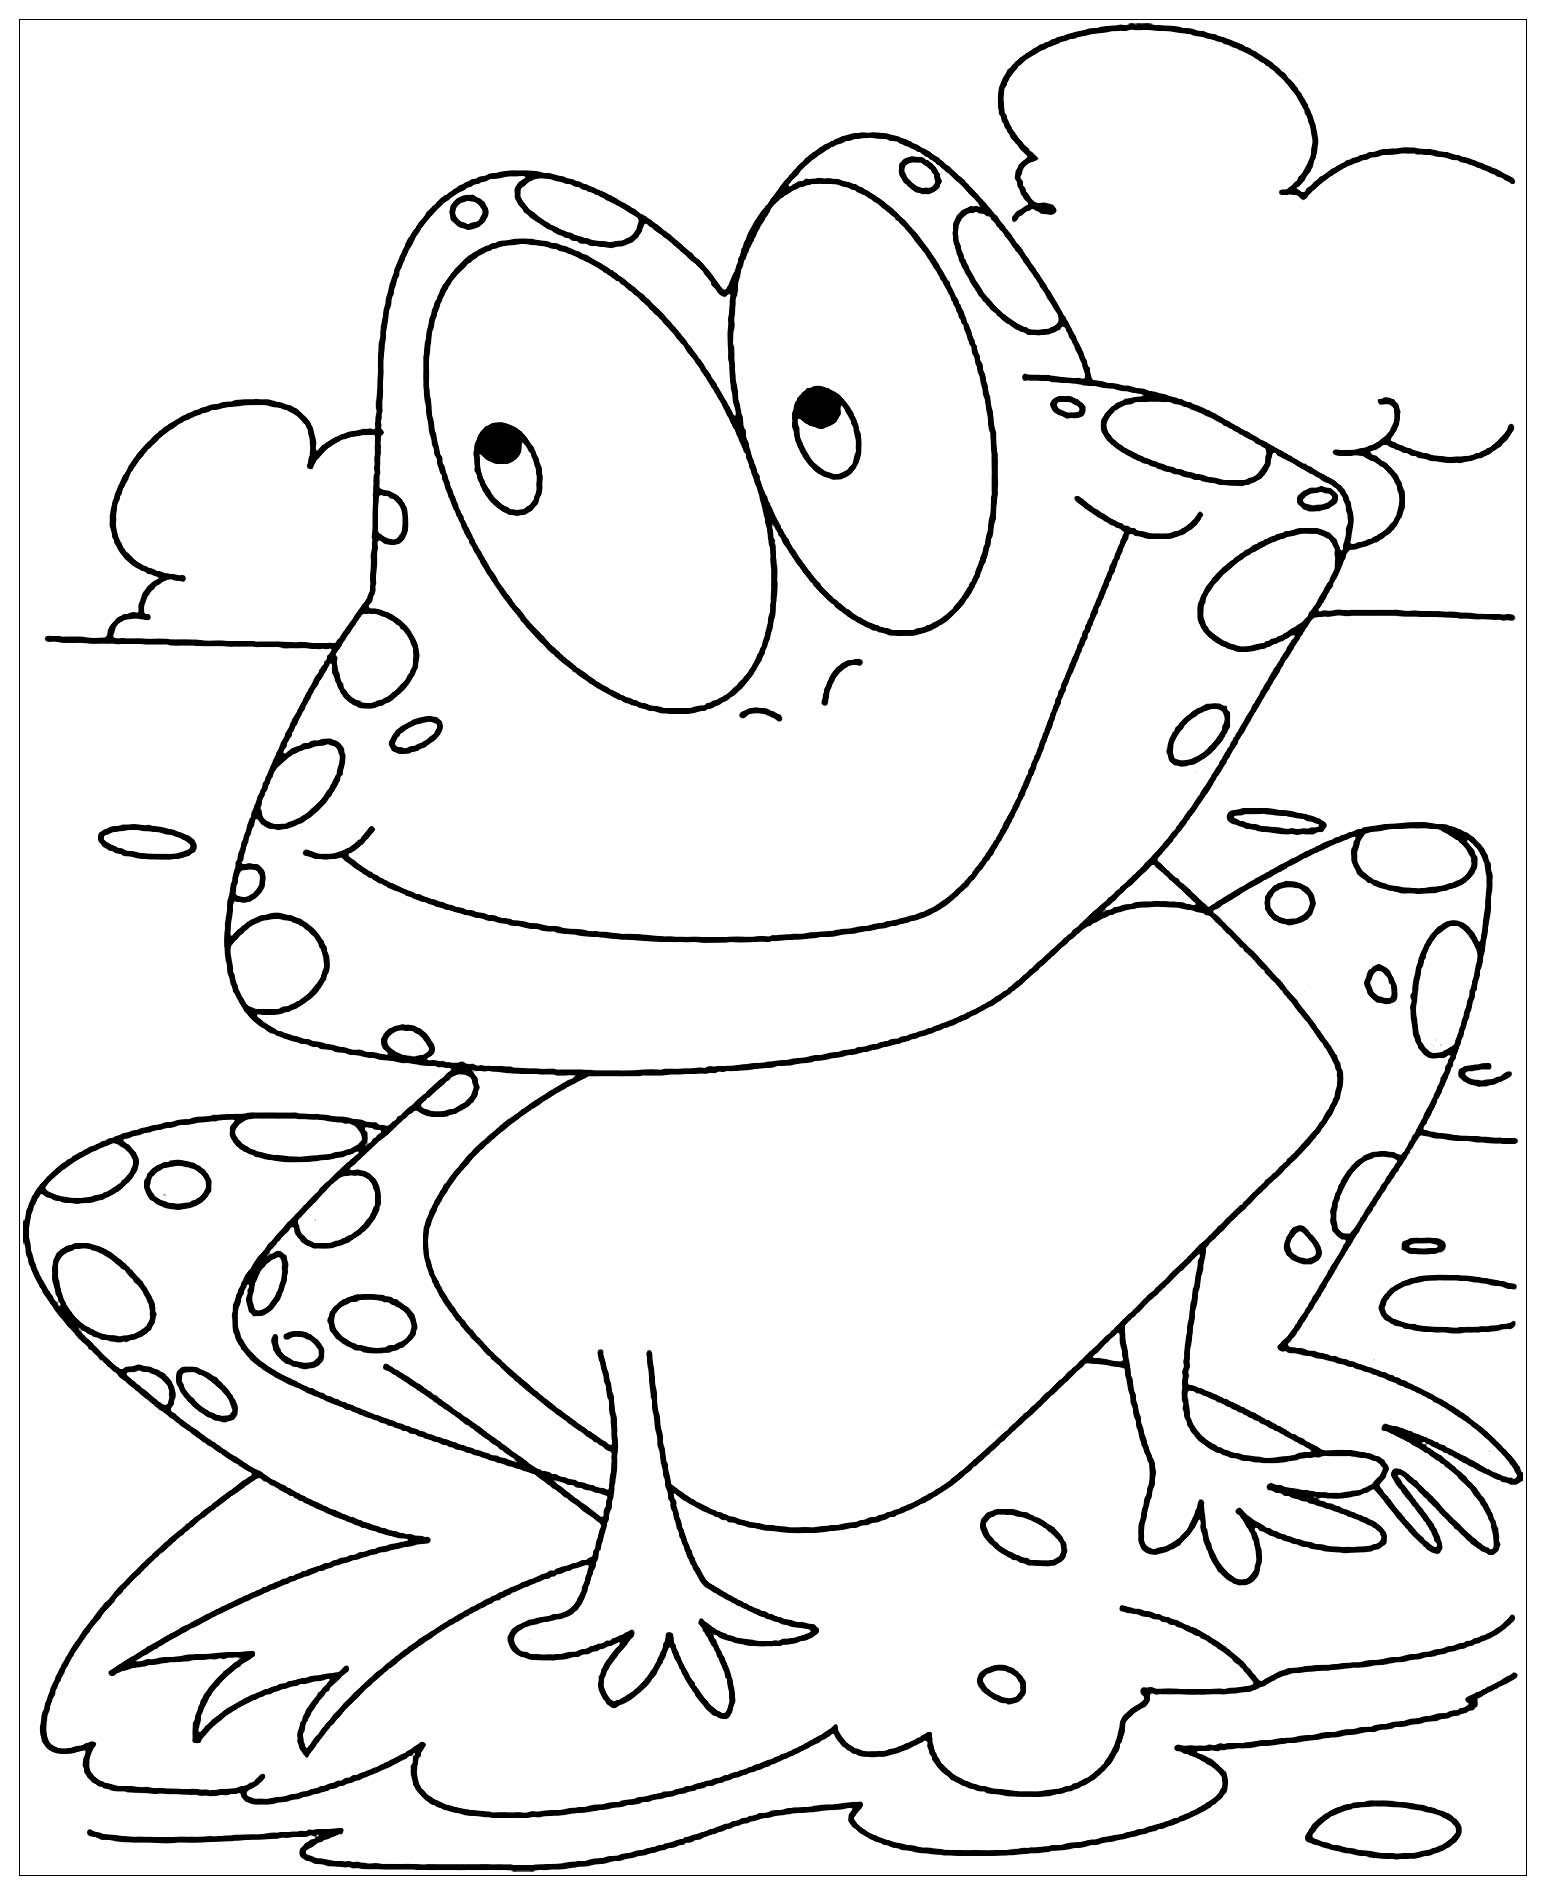 Frogs to color for children - Frogs Kids Coloring Pages